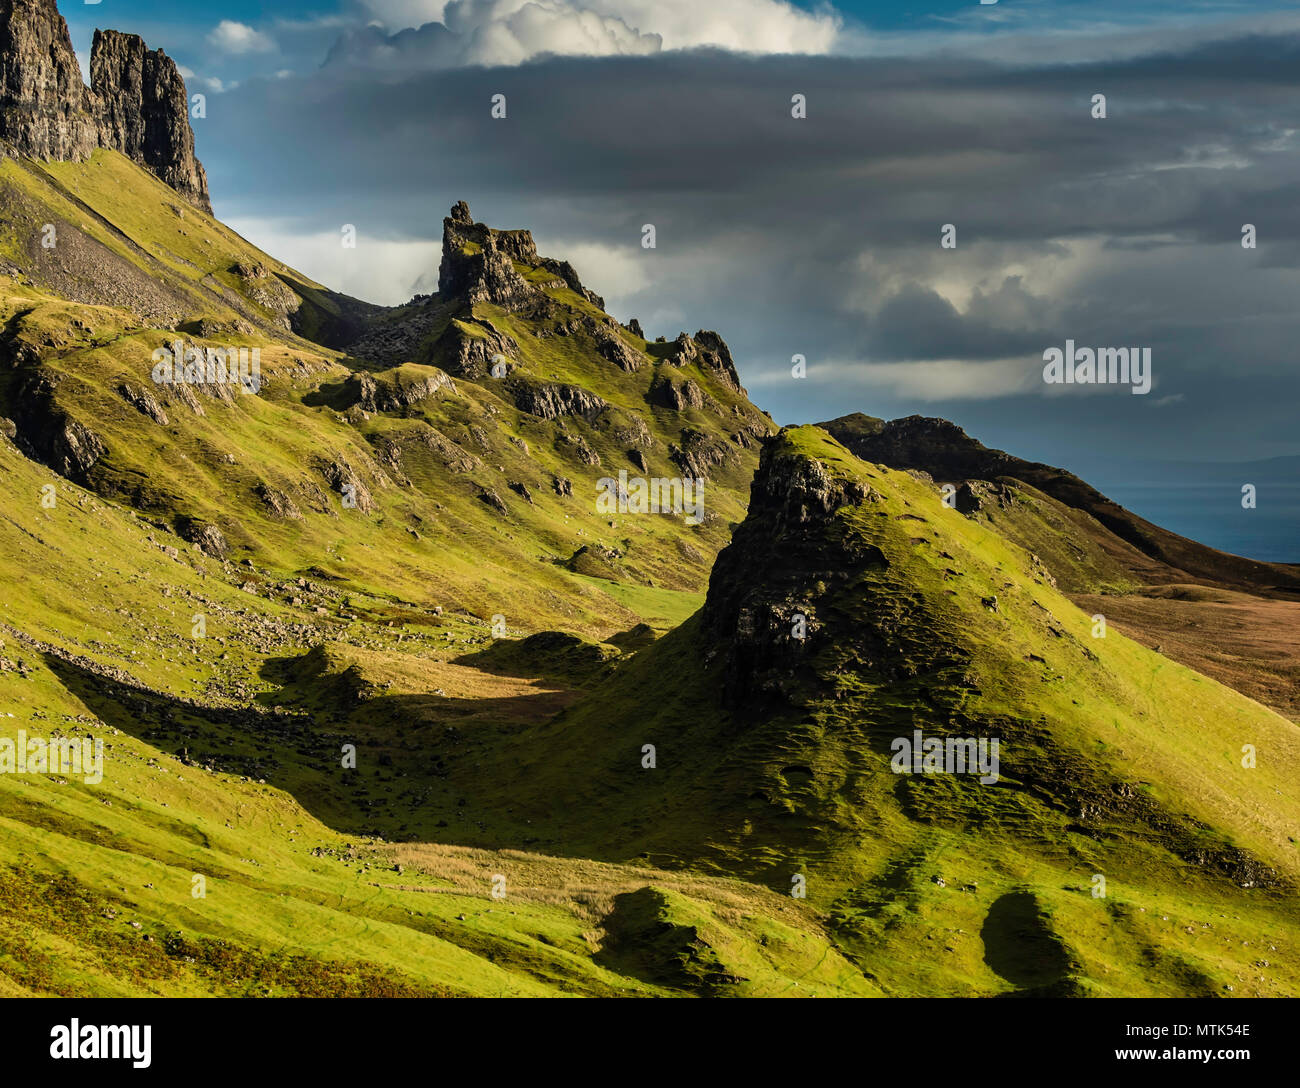 One of the most incredible sights seen on the Isle of Skye or anywhere for that matter is the remarkable Quiraing landslip. - Stock Image